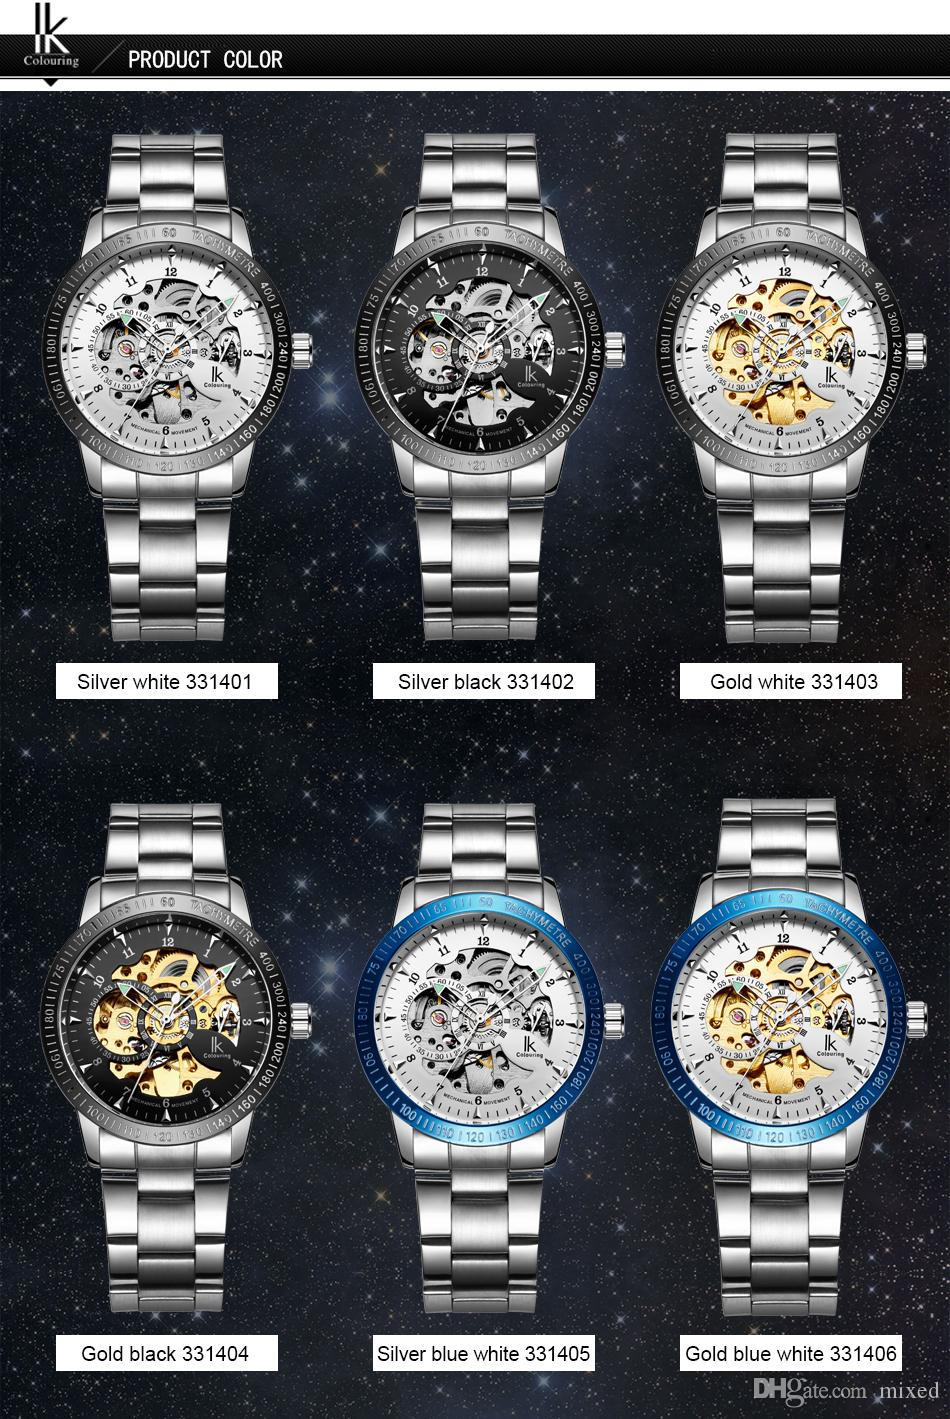 IK Colouring 98226G Double Hollow Automatic Mechanical Watches Through the End of Men's Fashion